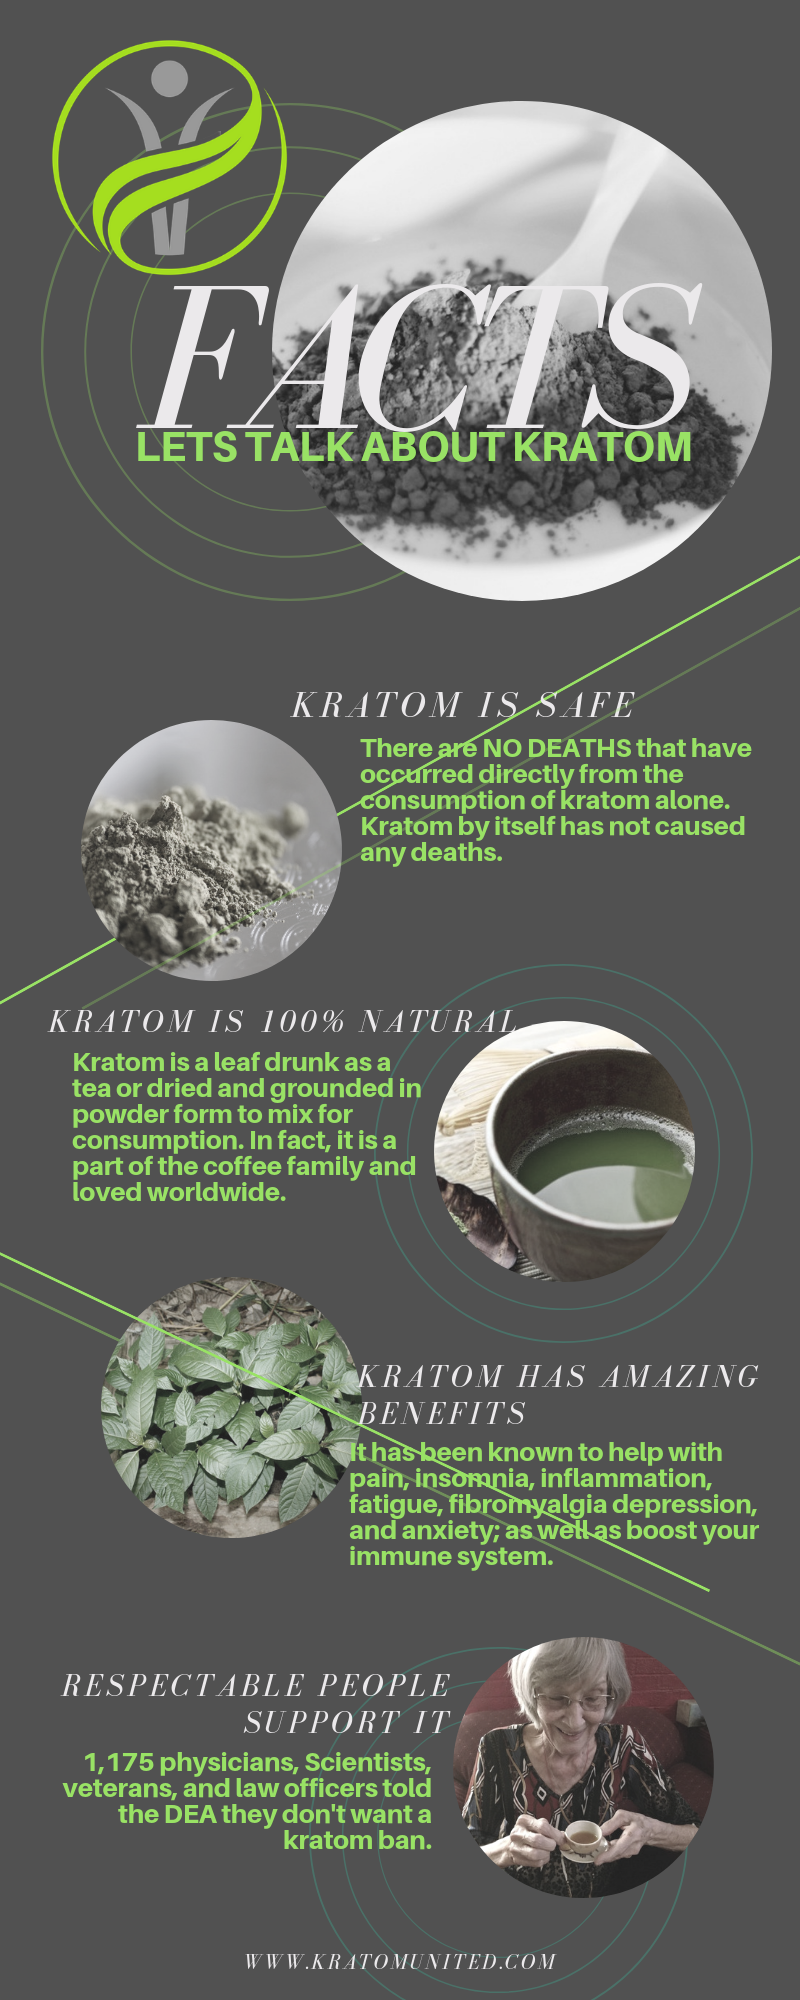 facts about kratom - FREE to share